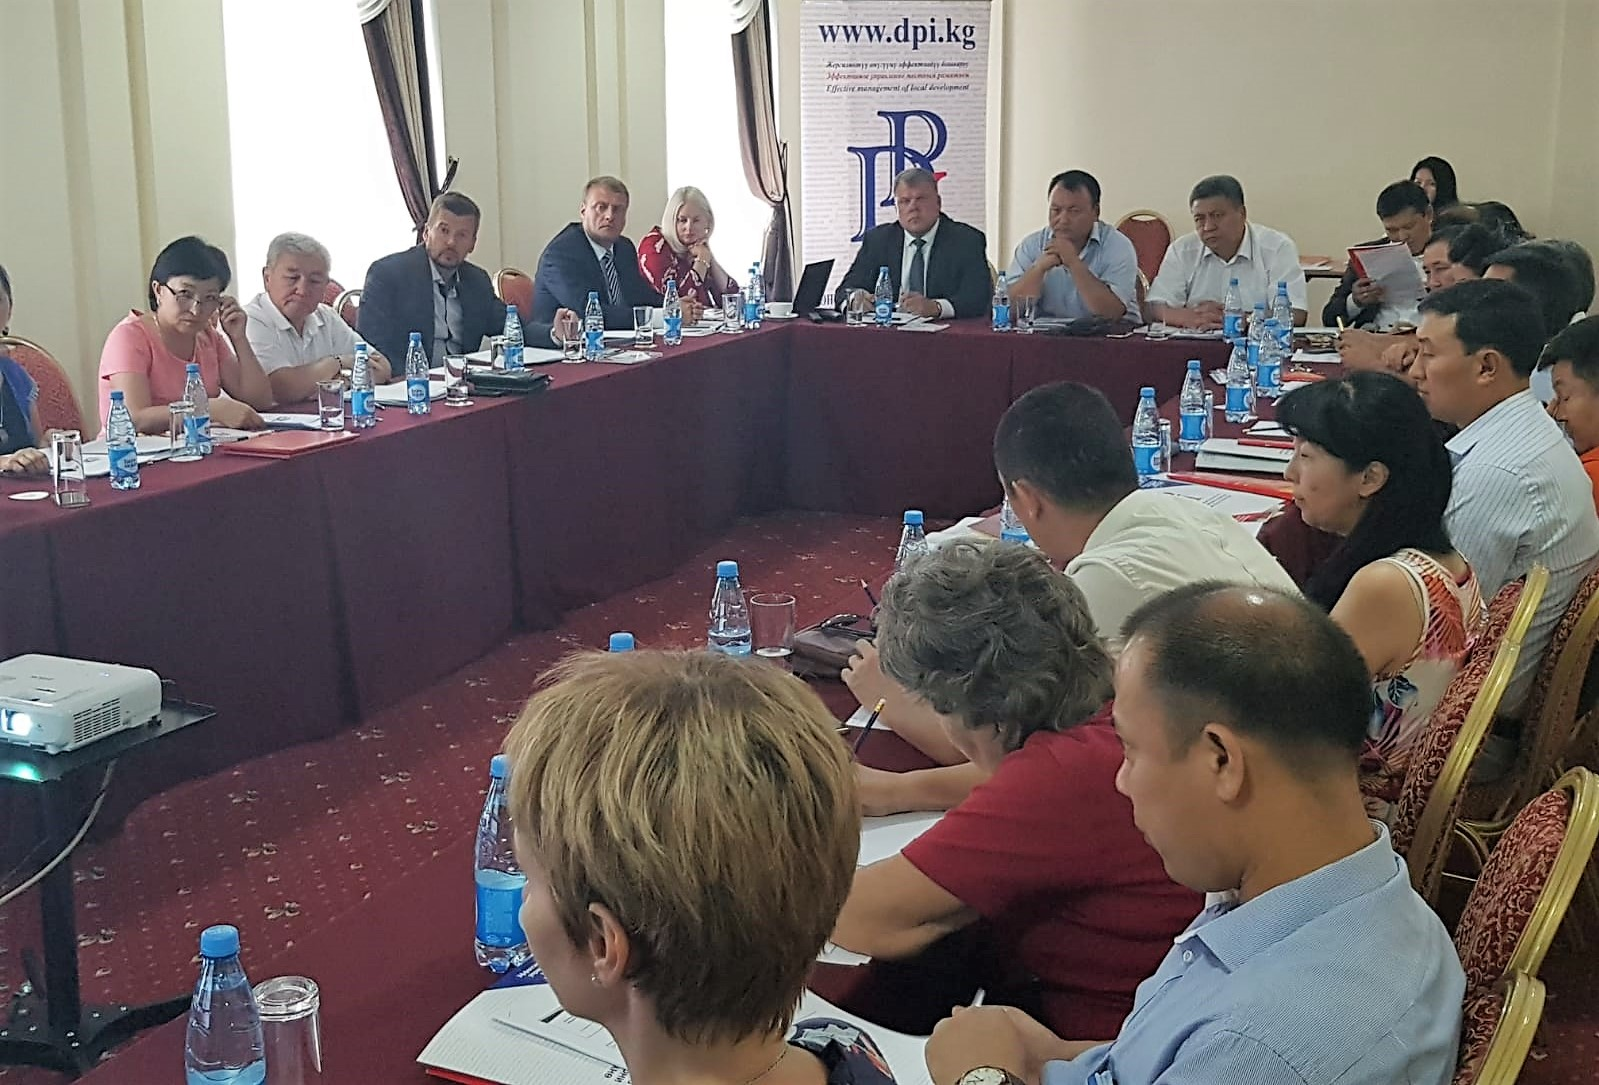 LALRG in Kyrgyzstan shares its experience in representing local government interests